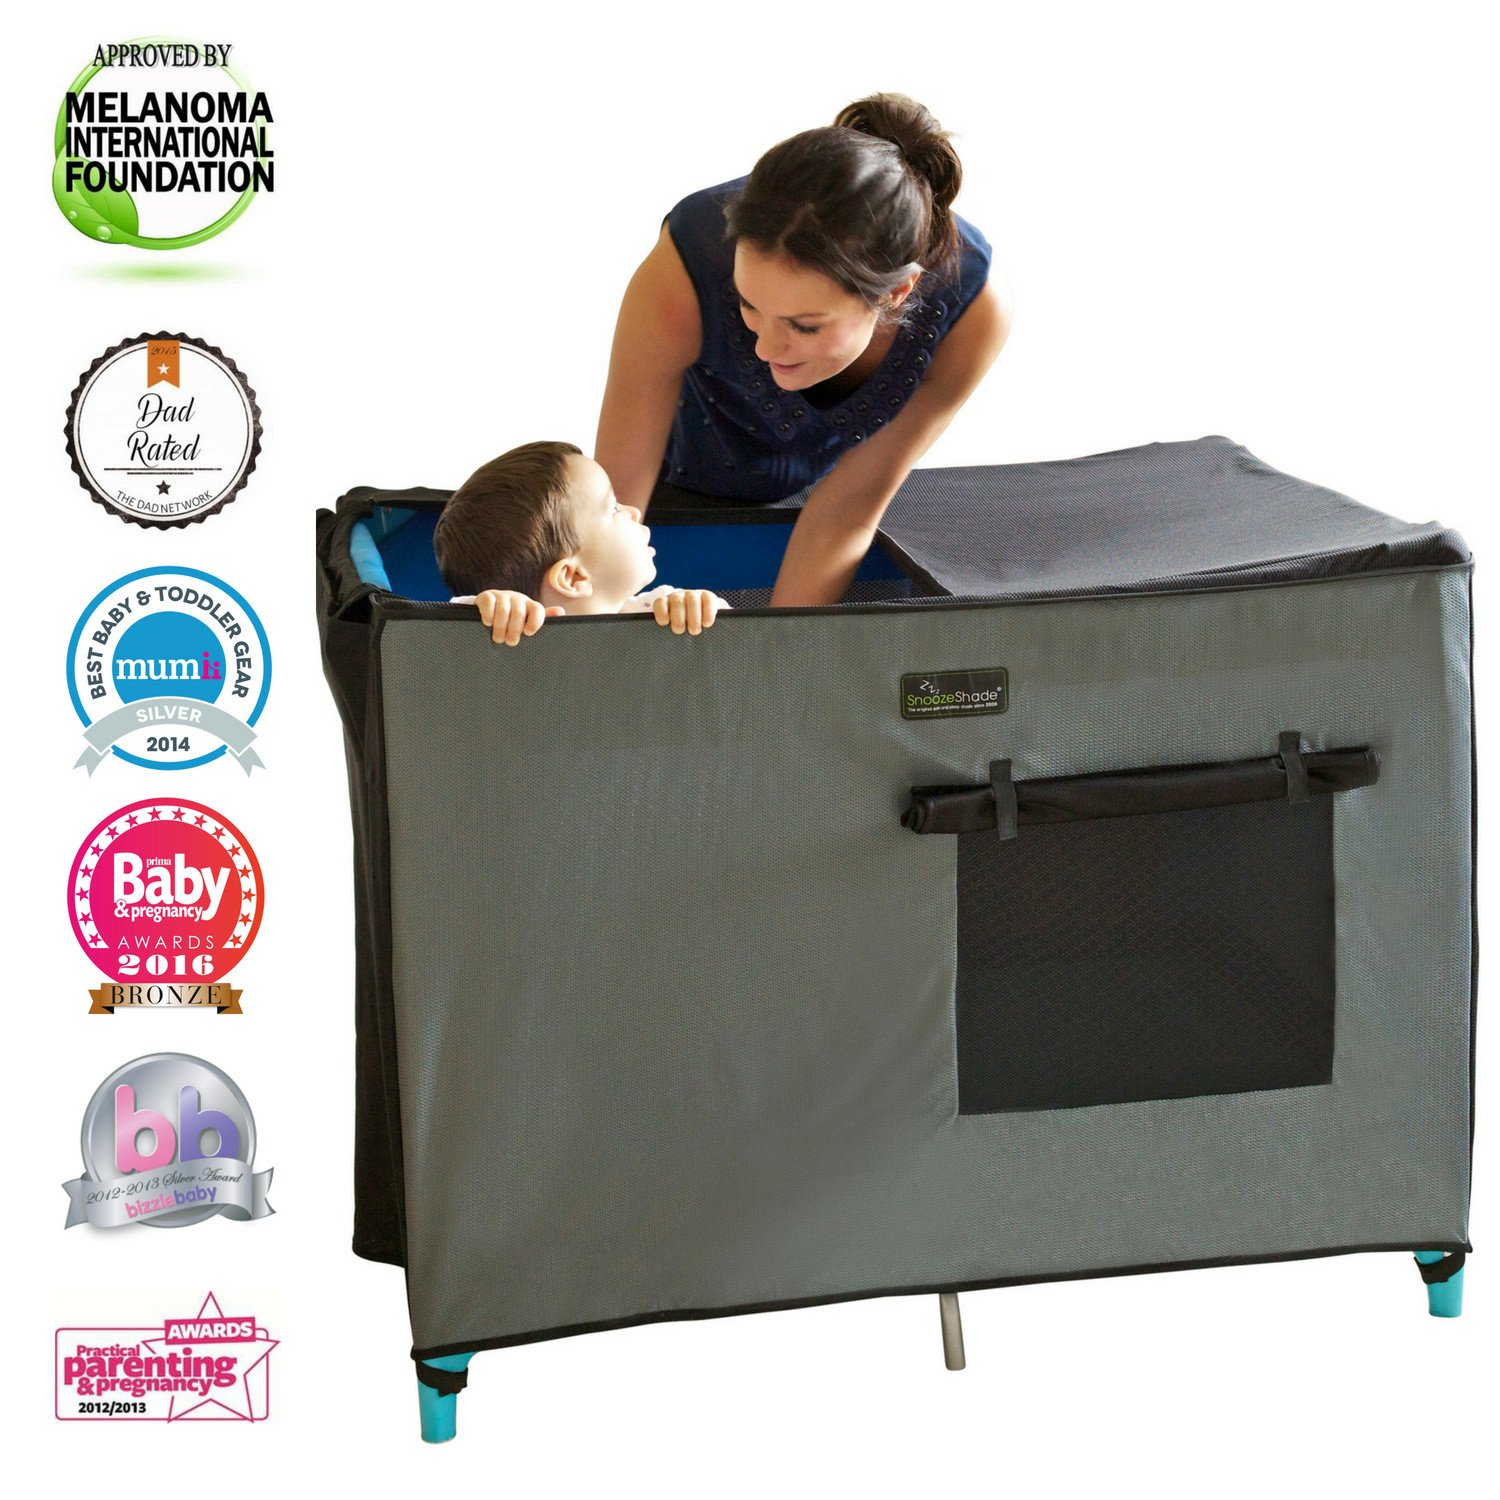 SnoozeShade for Travel Cots - blackout sleep canopy for standard travels cots   B007BADUH2